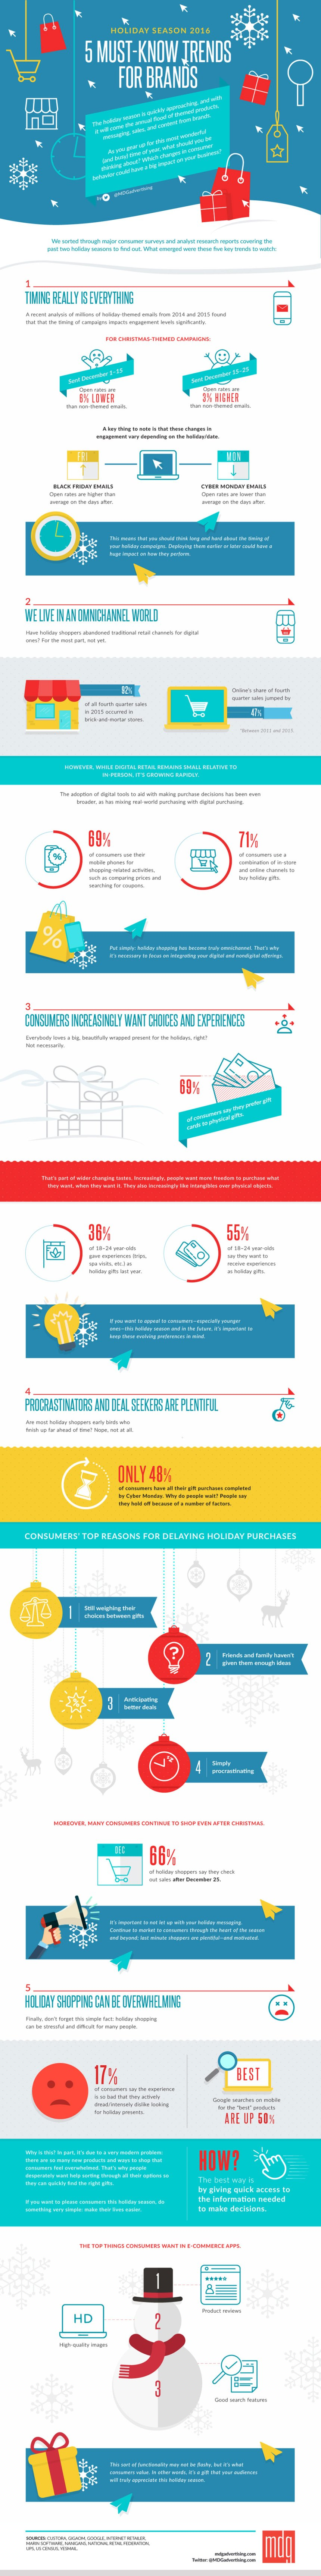 Holiday Marketing 2016: 5 Must-Know Trends for Brands [Infographic]